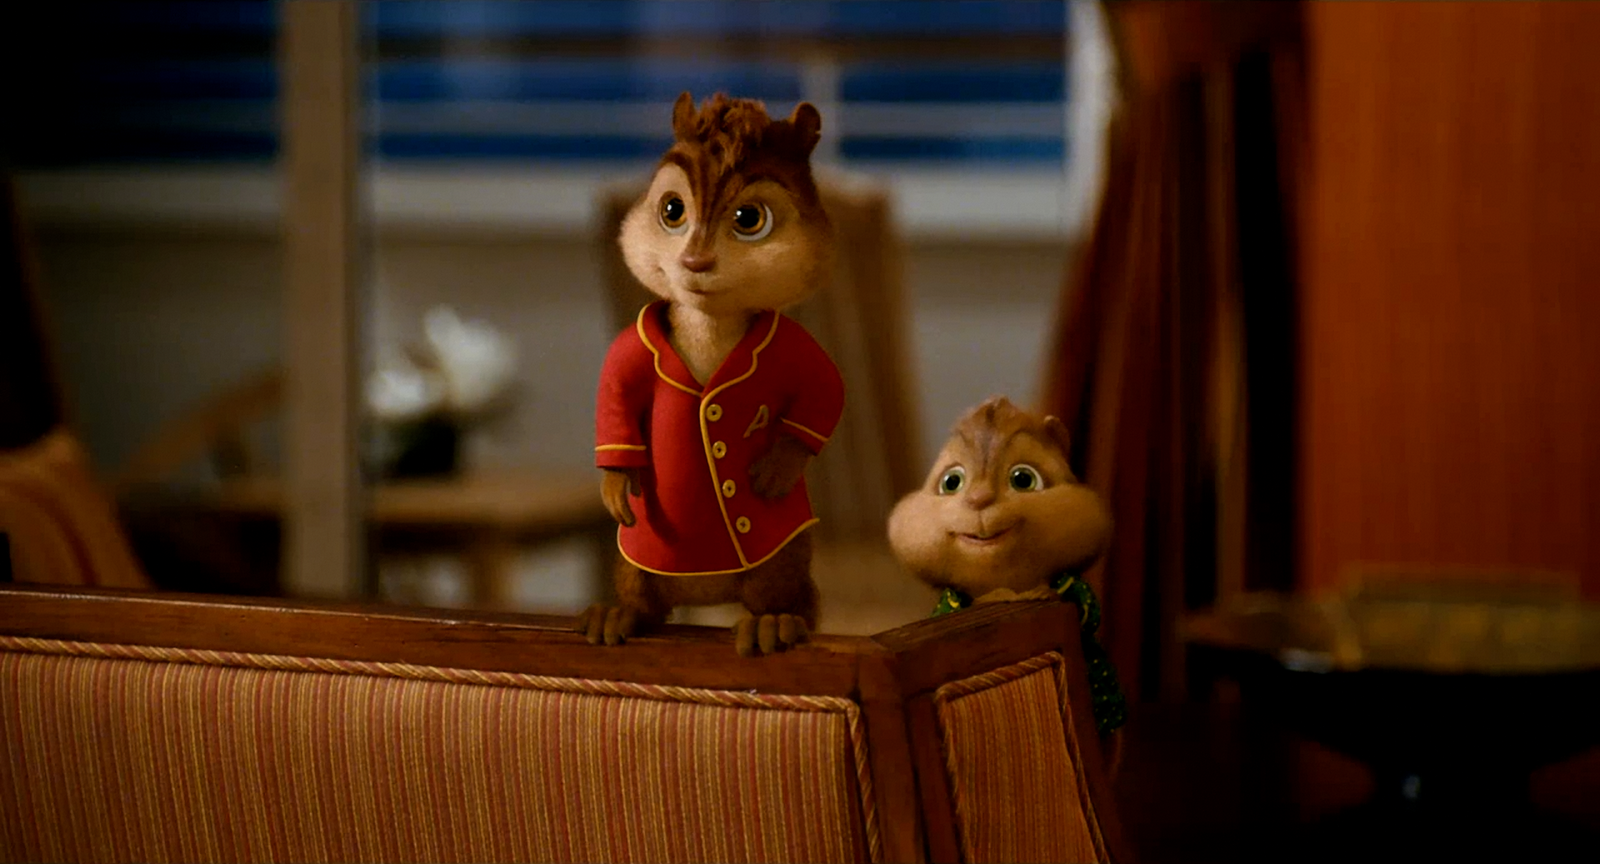 alvin+and+the+chipmunks+chipwrecked+alvin+theodore+pajamas.png